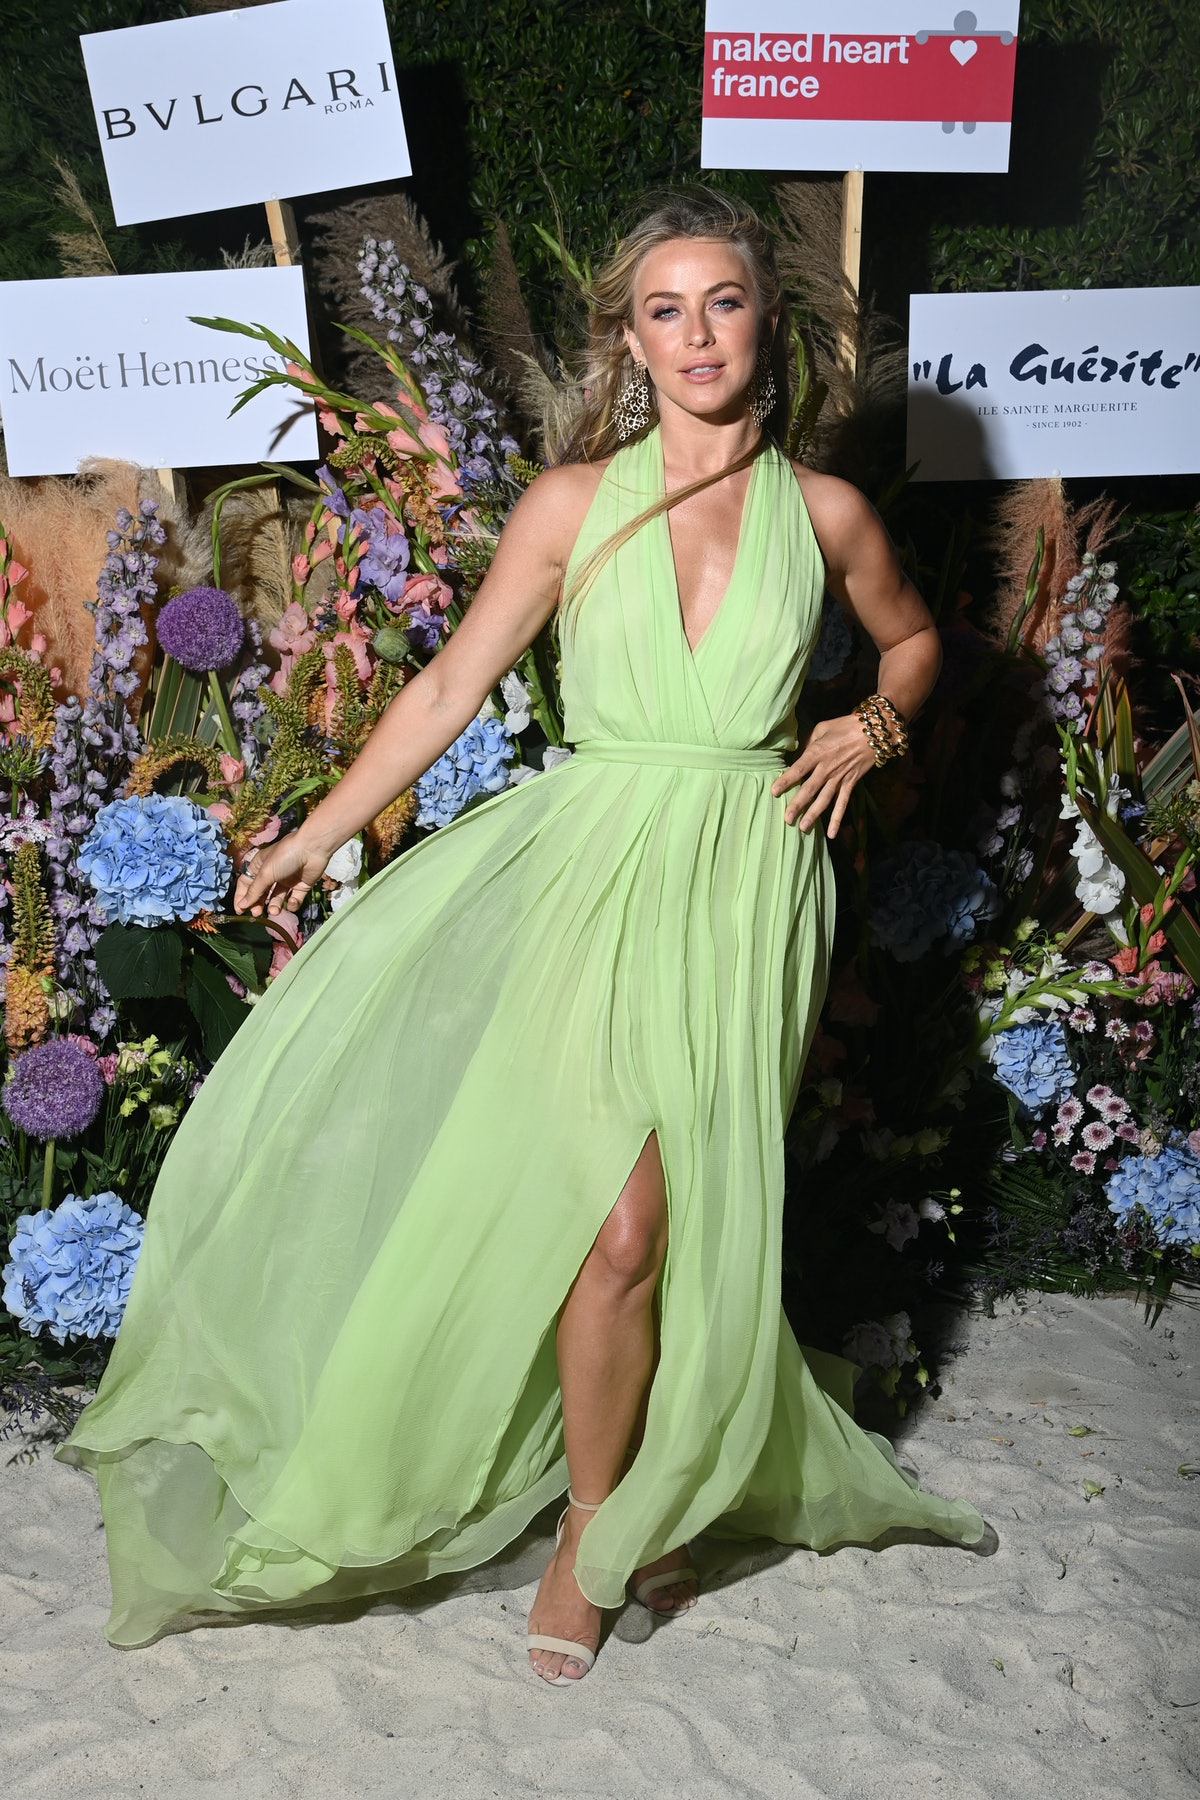 CANNES, FRANCE - JULY 13: Julianne Hough attends the Naked Heart France Riviera Dinner 2021 during t...